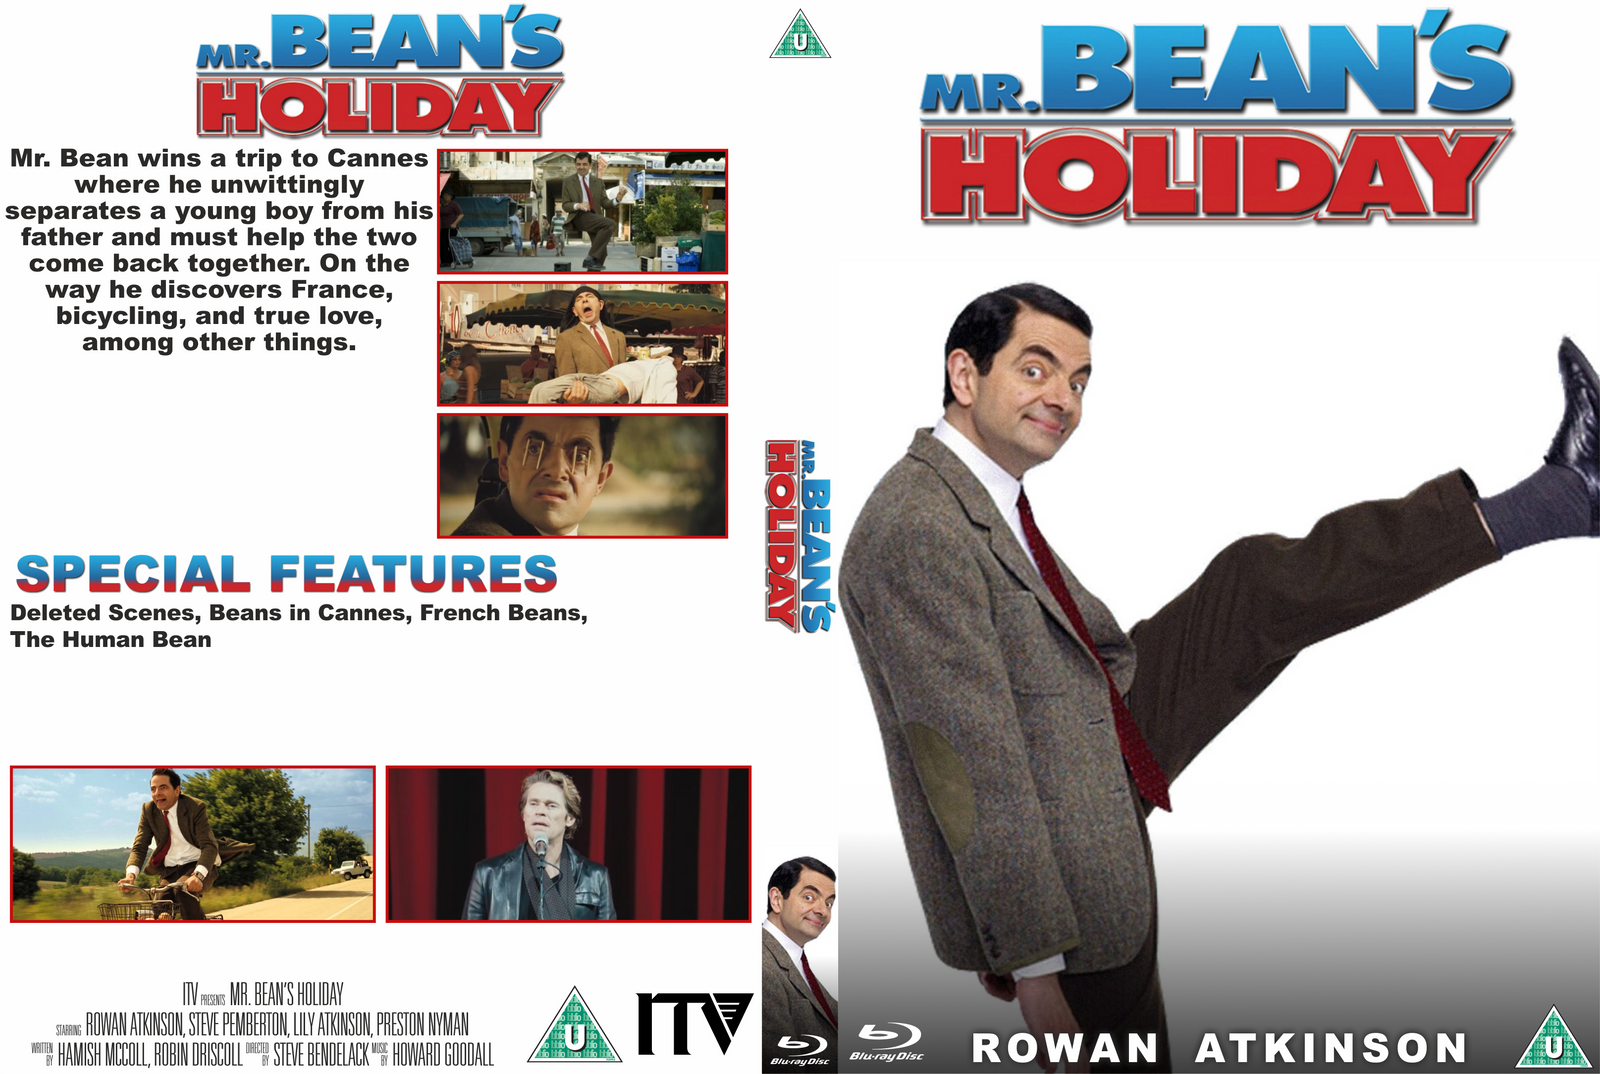 Bean by wario64i on deviantart wario64i 0 0 mr beans holiday bd standard case cover by wario64i solutioingenieria Gallery